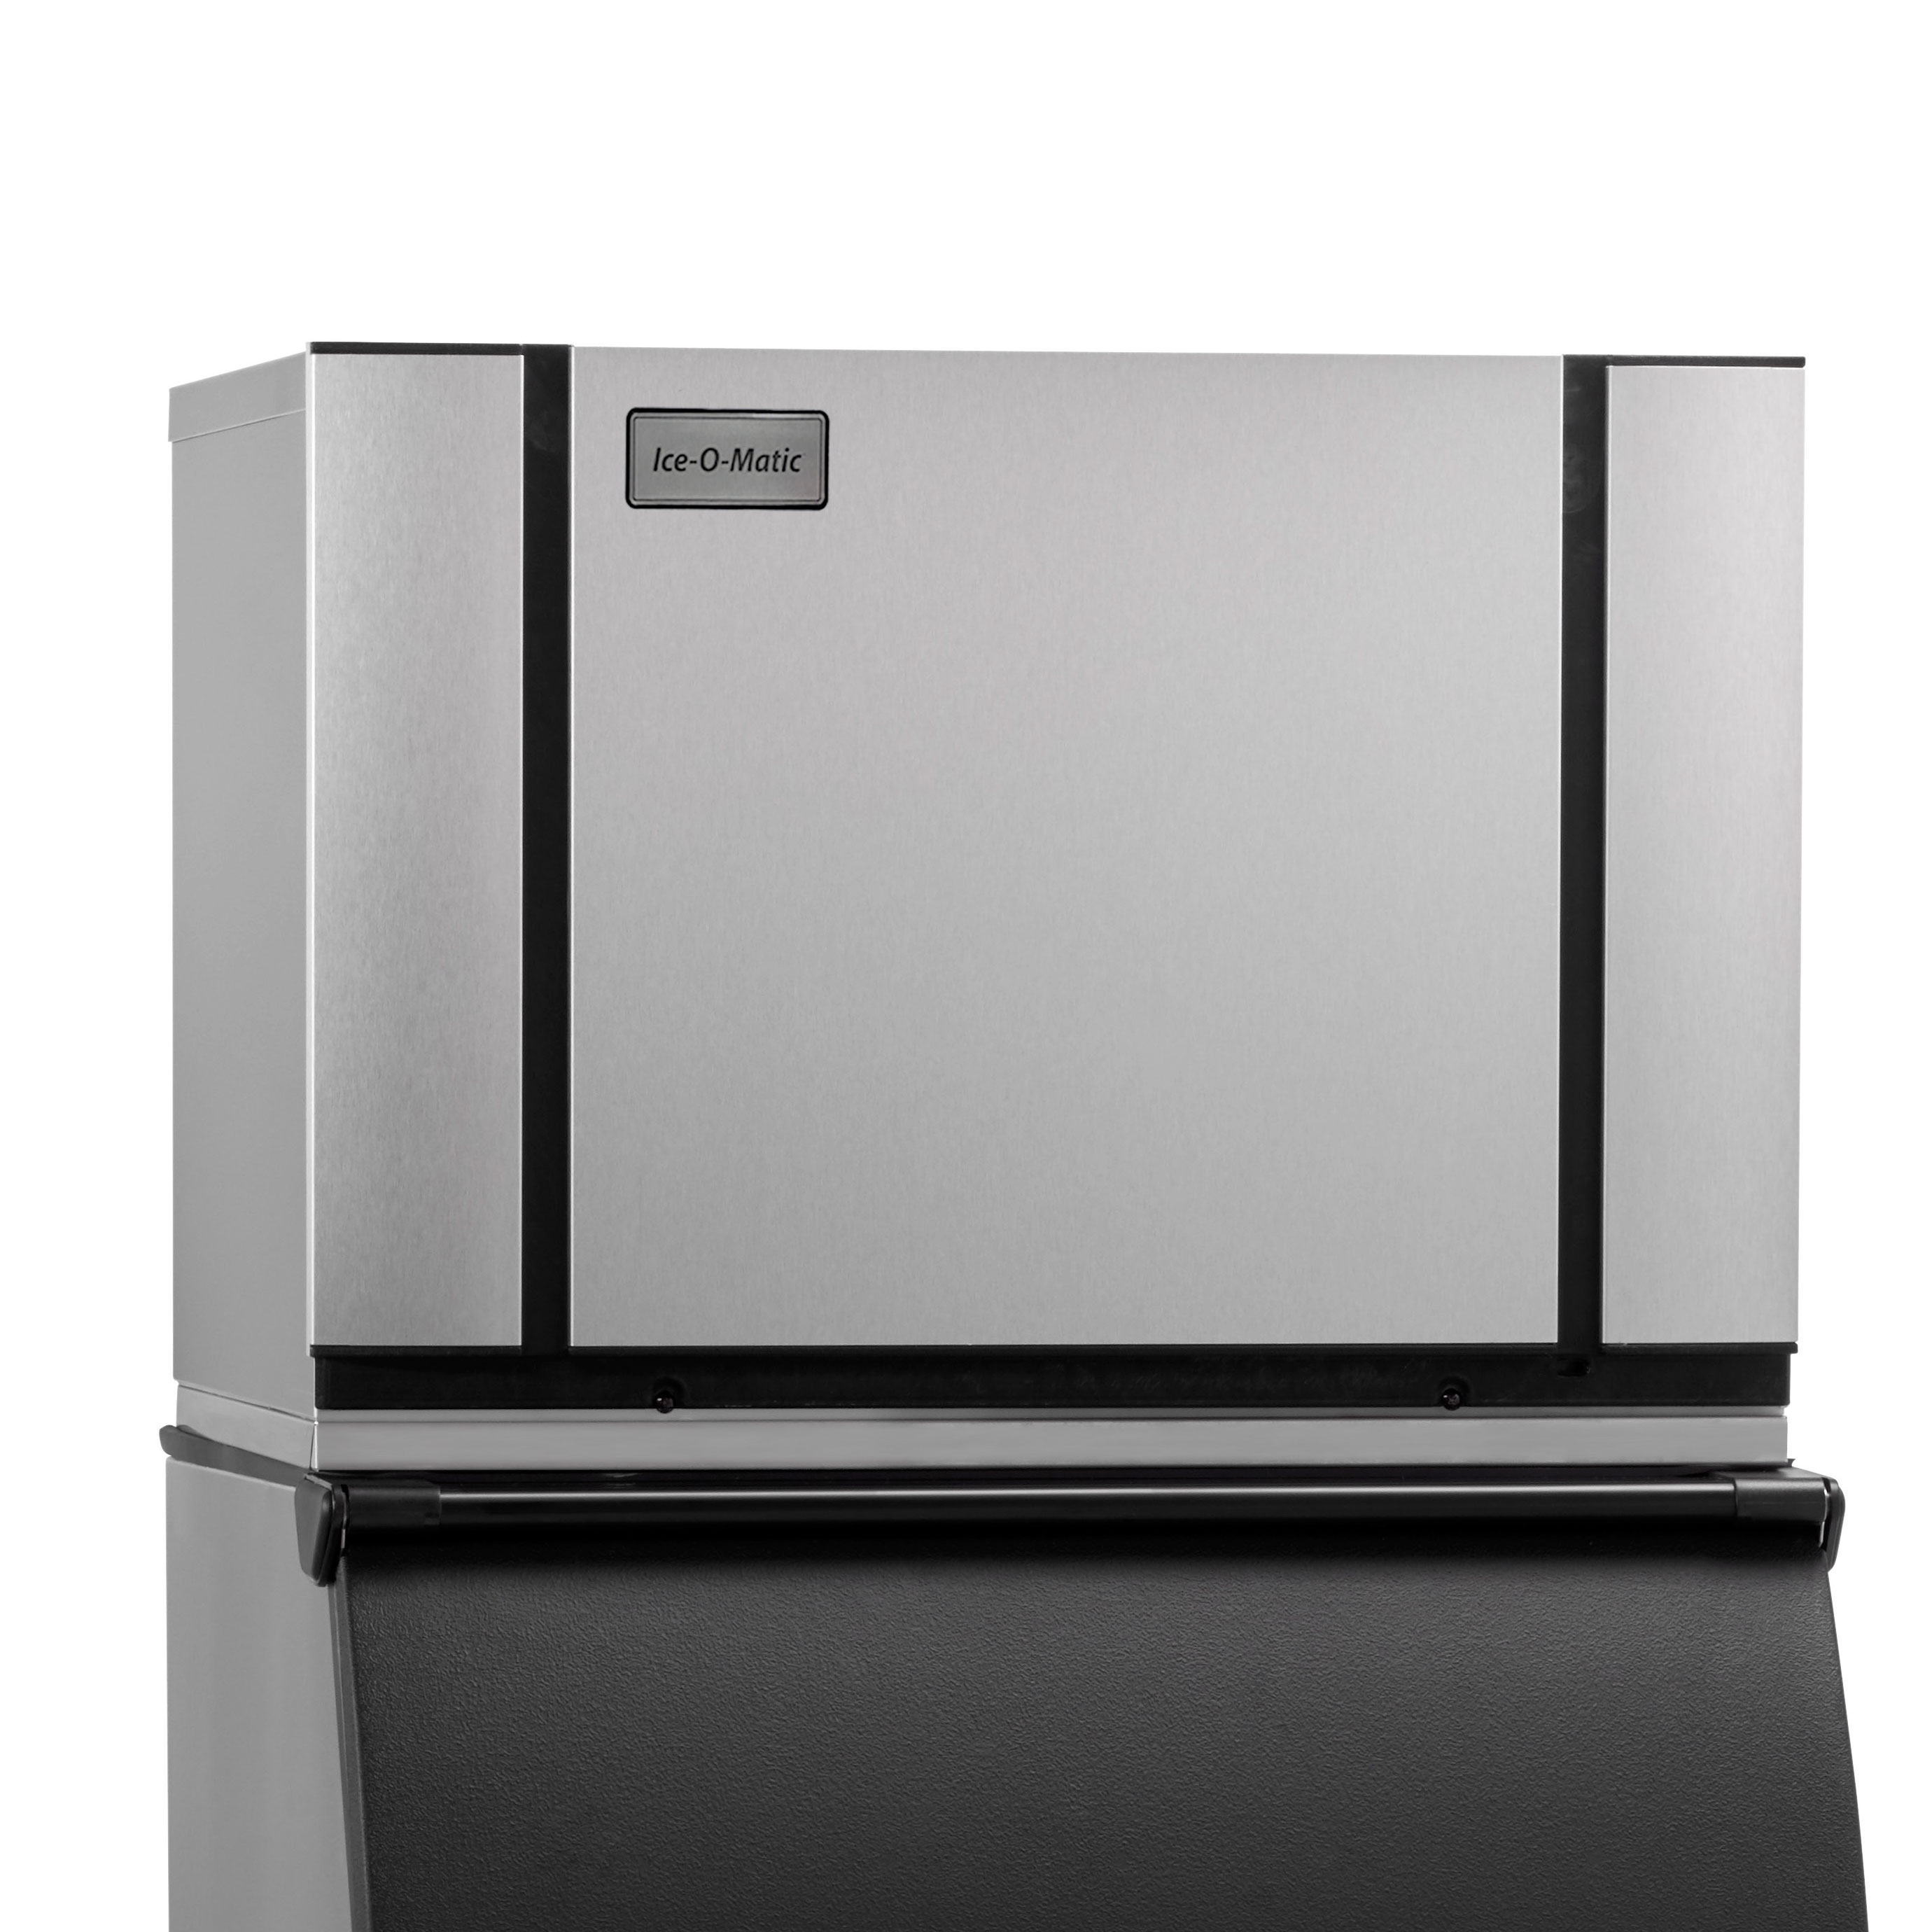 Ice-O-Matic CIM0530HR ice maker, cube-style